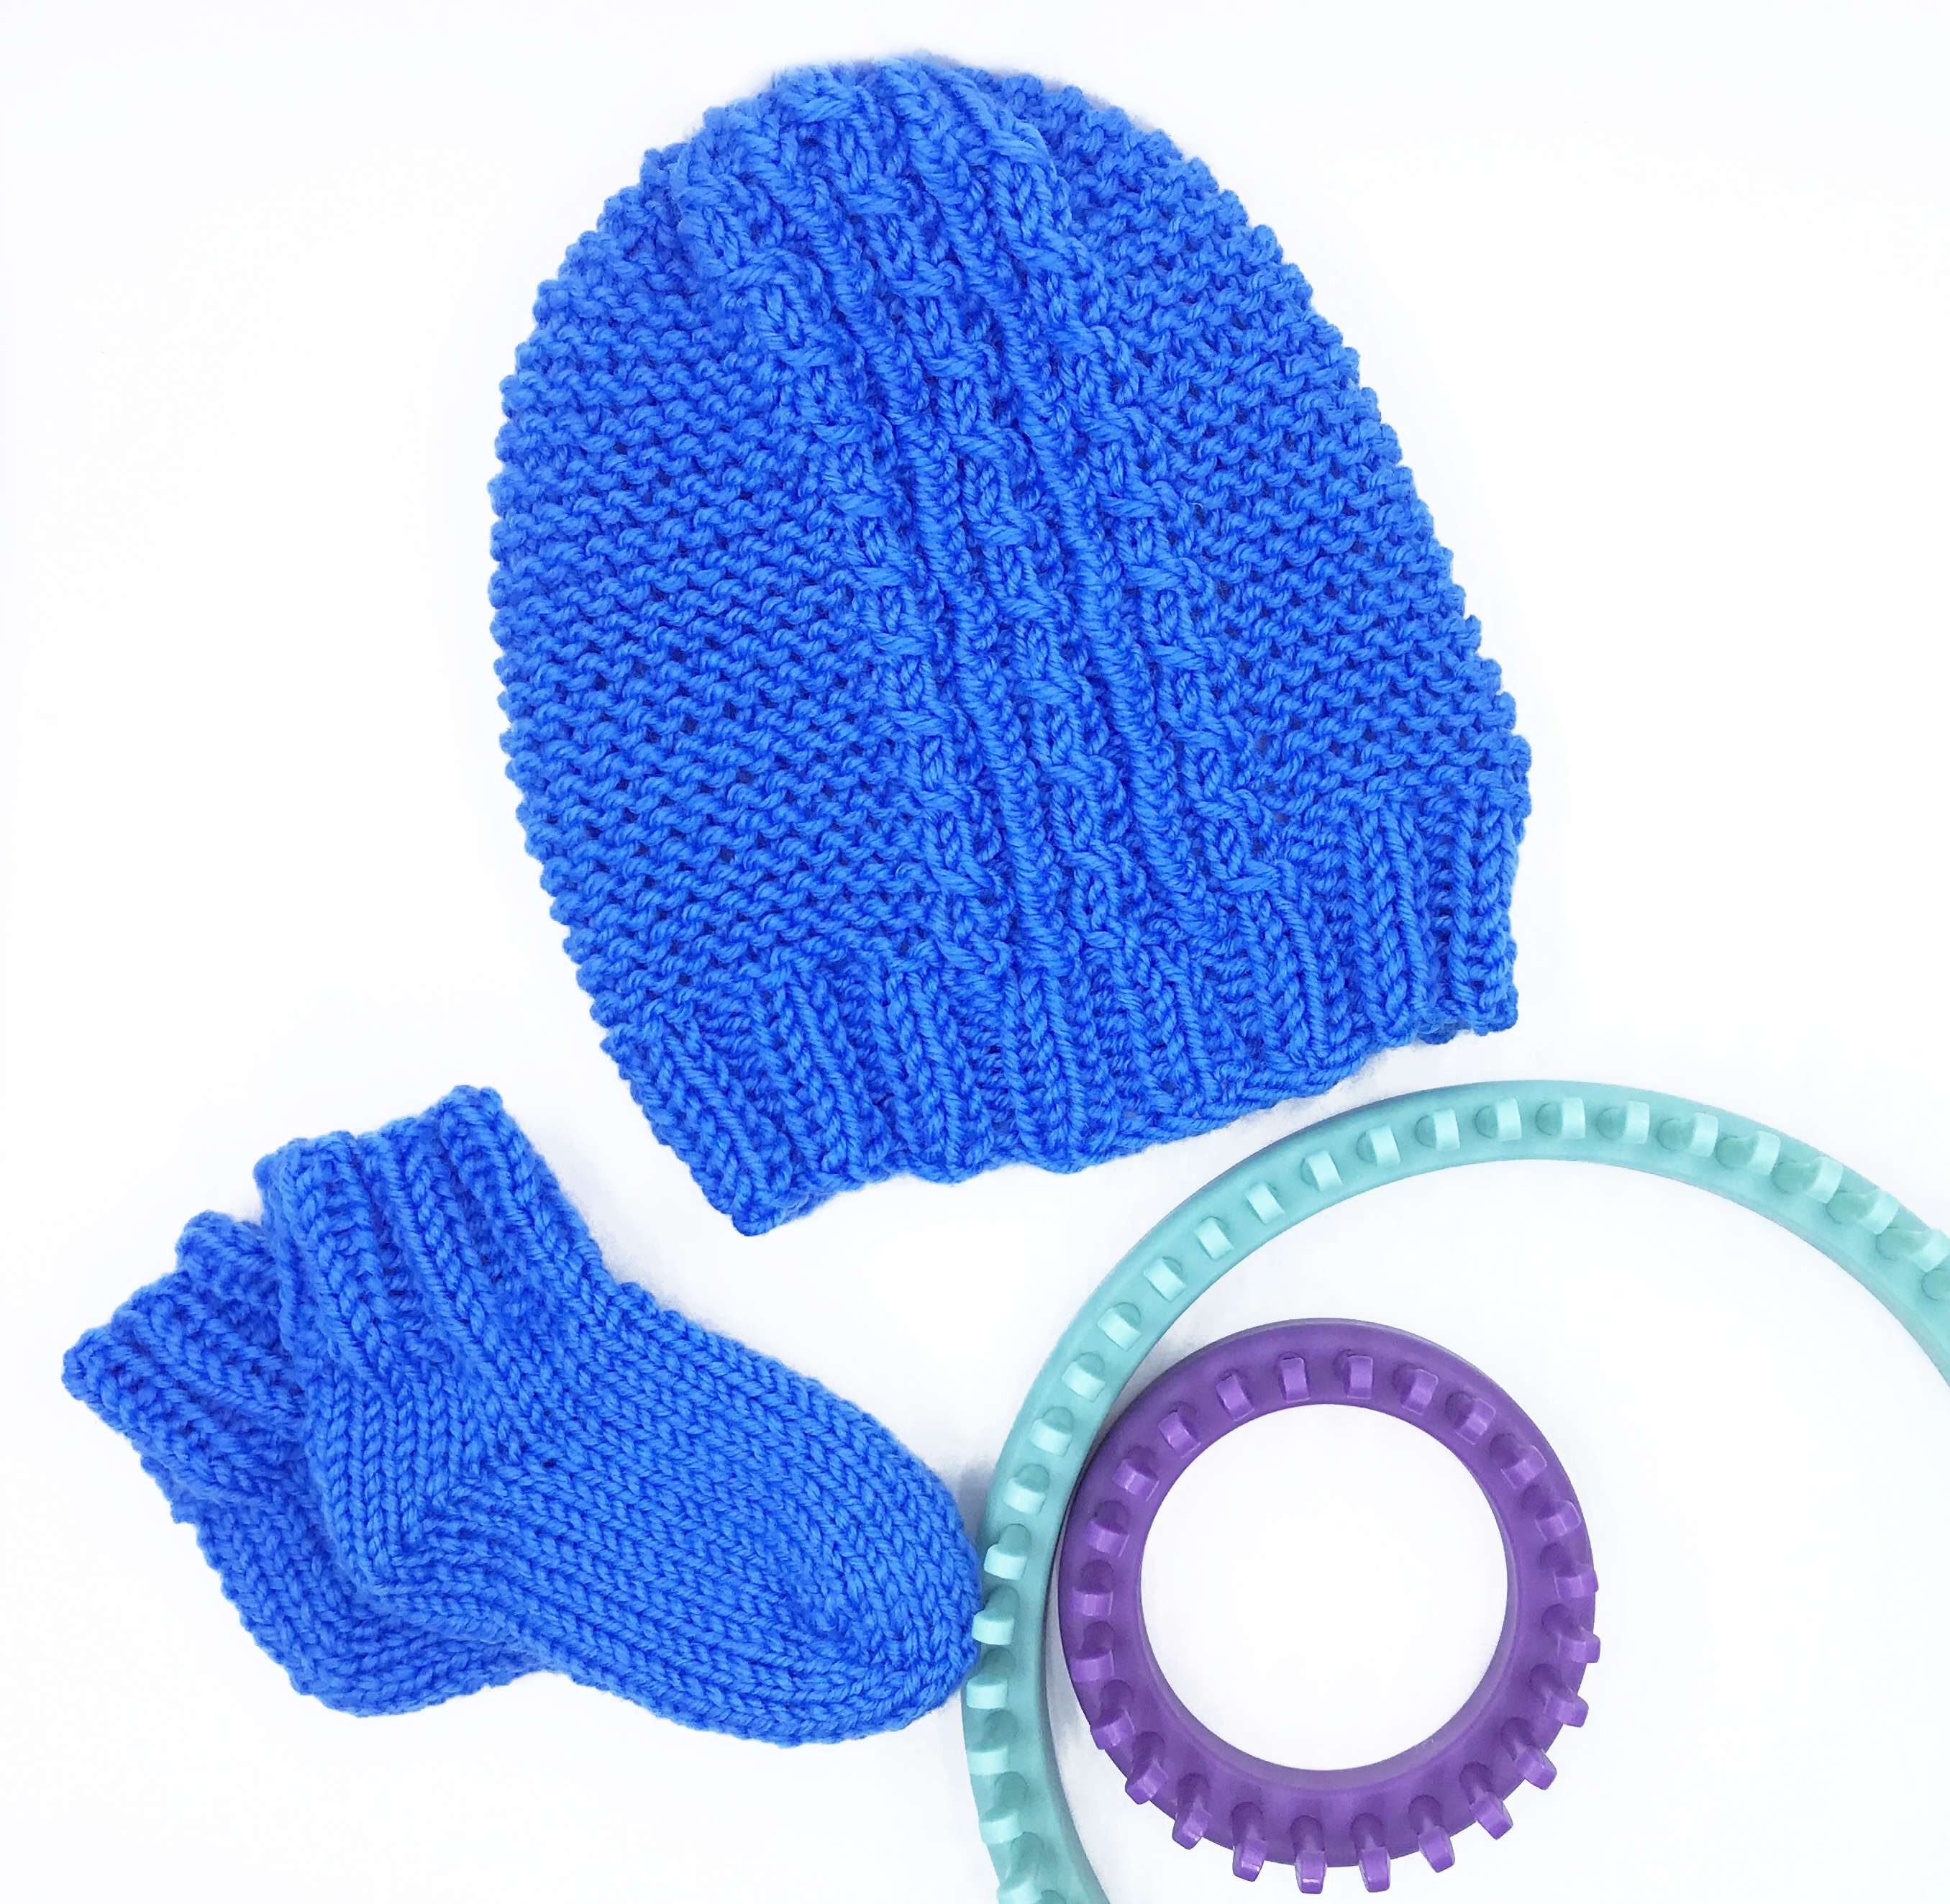 Twists & Ribs Baby Hat and Booties